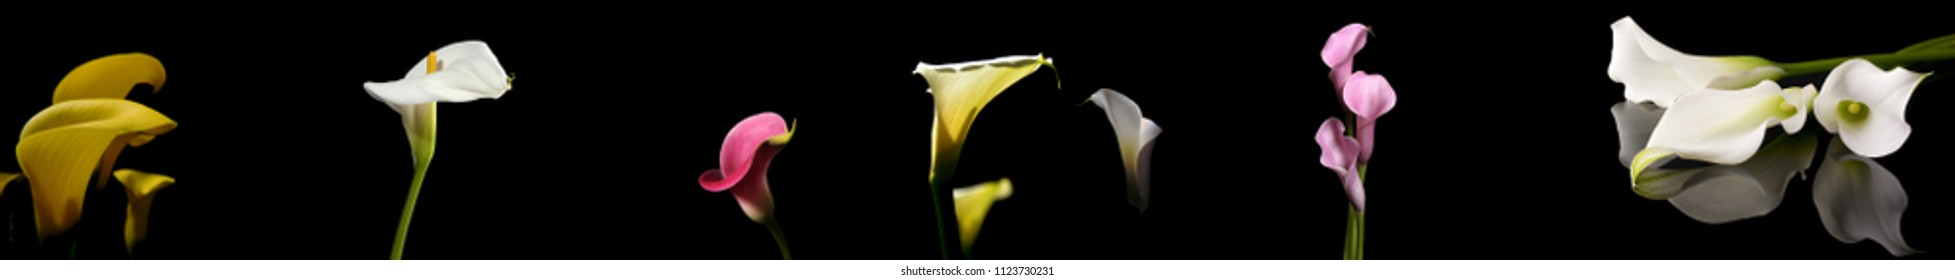 Zantedeschia of different colors on a black background.